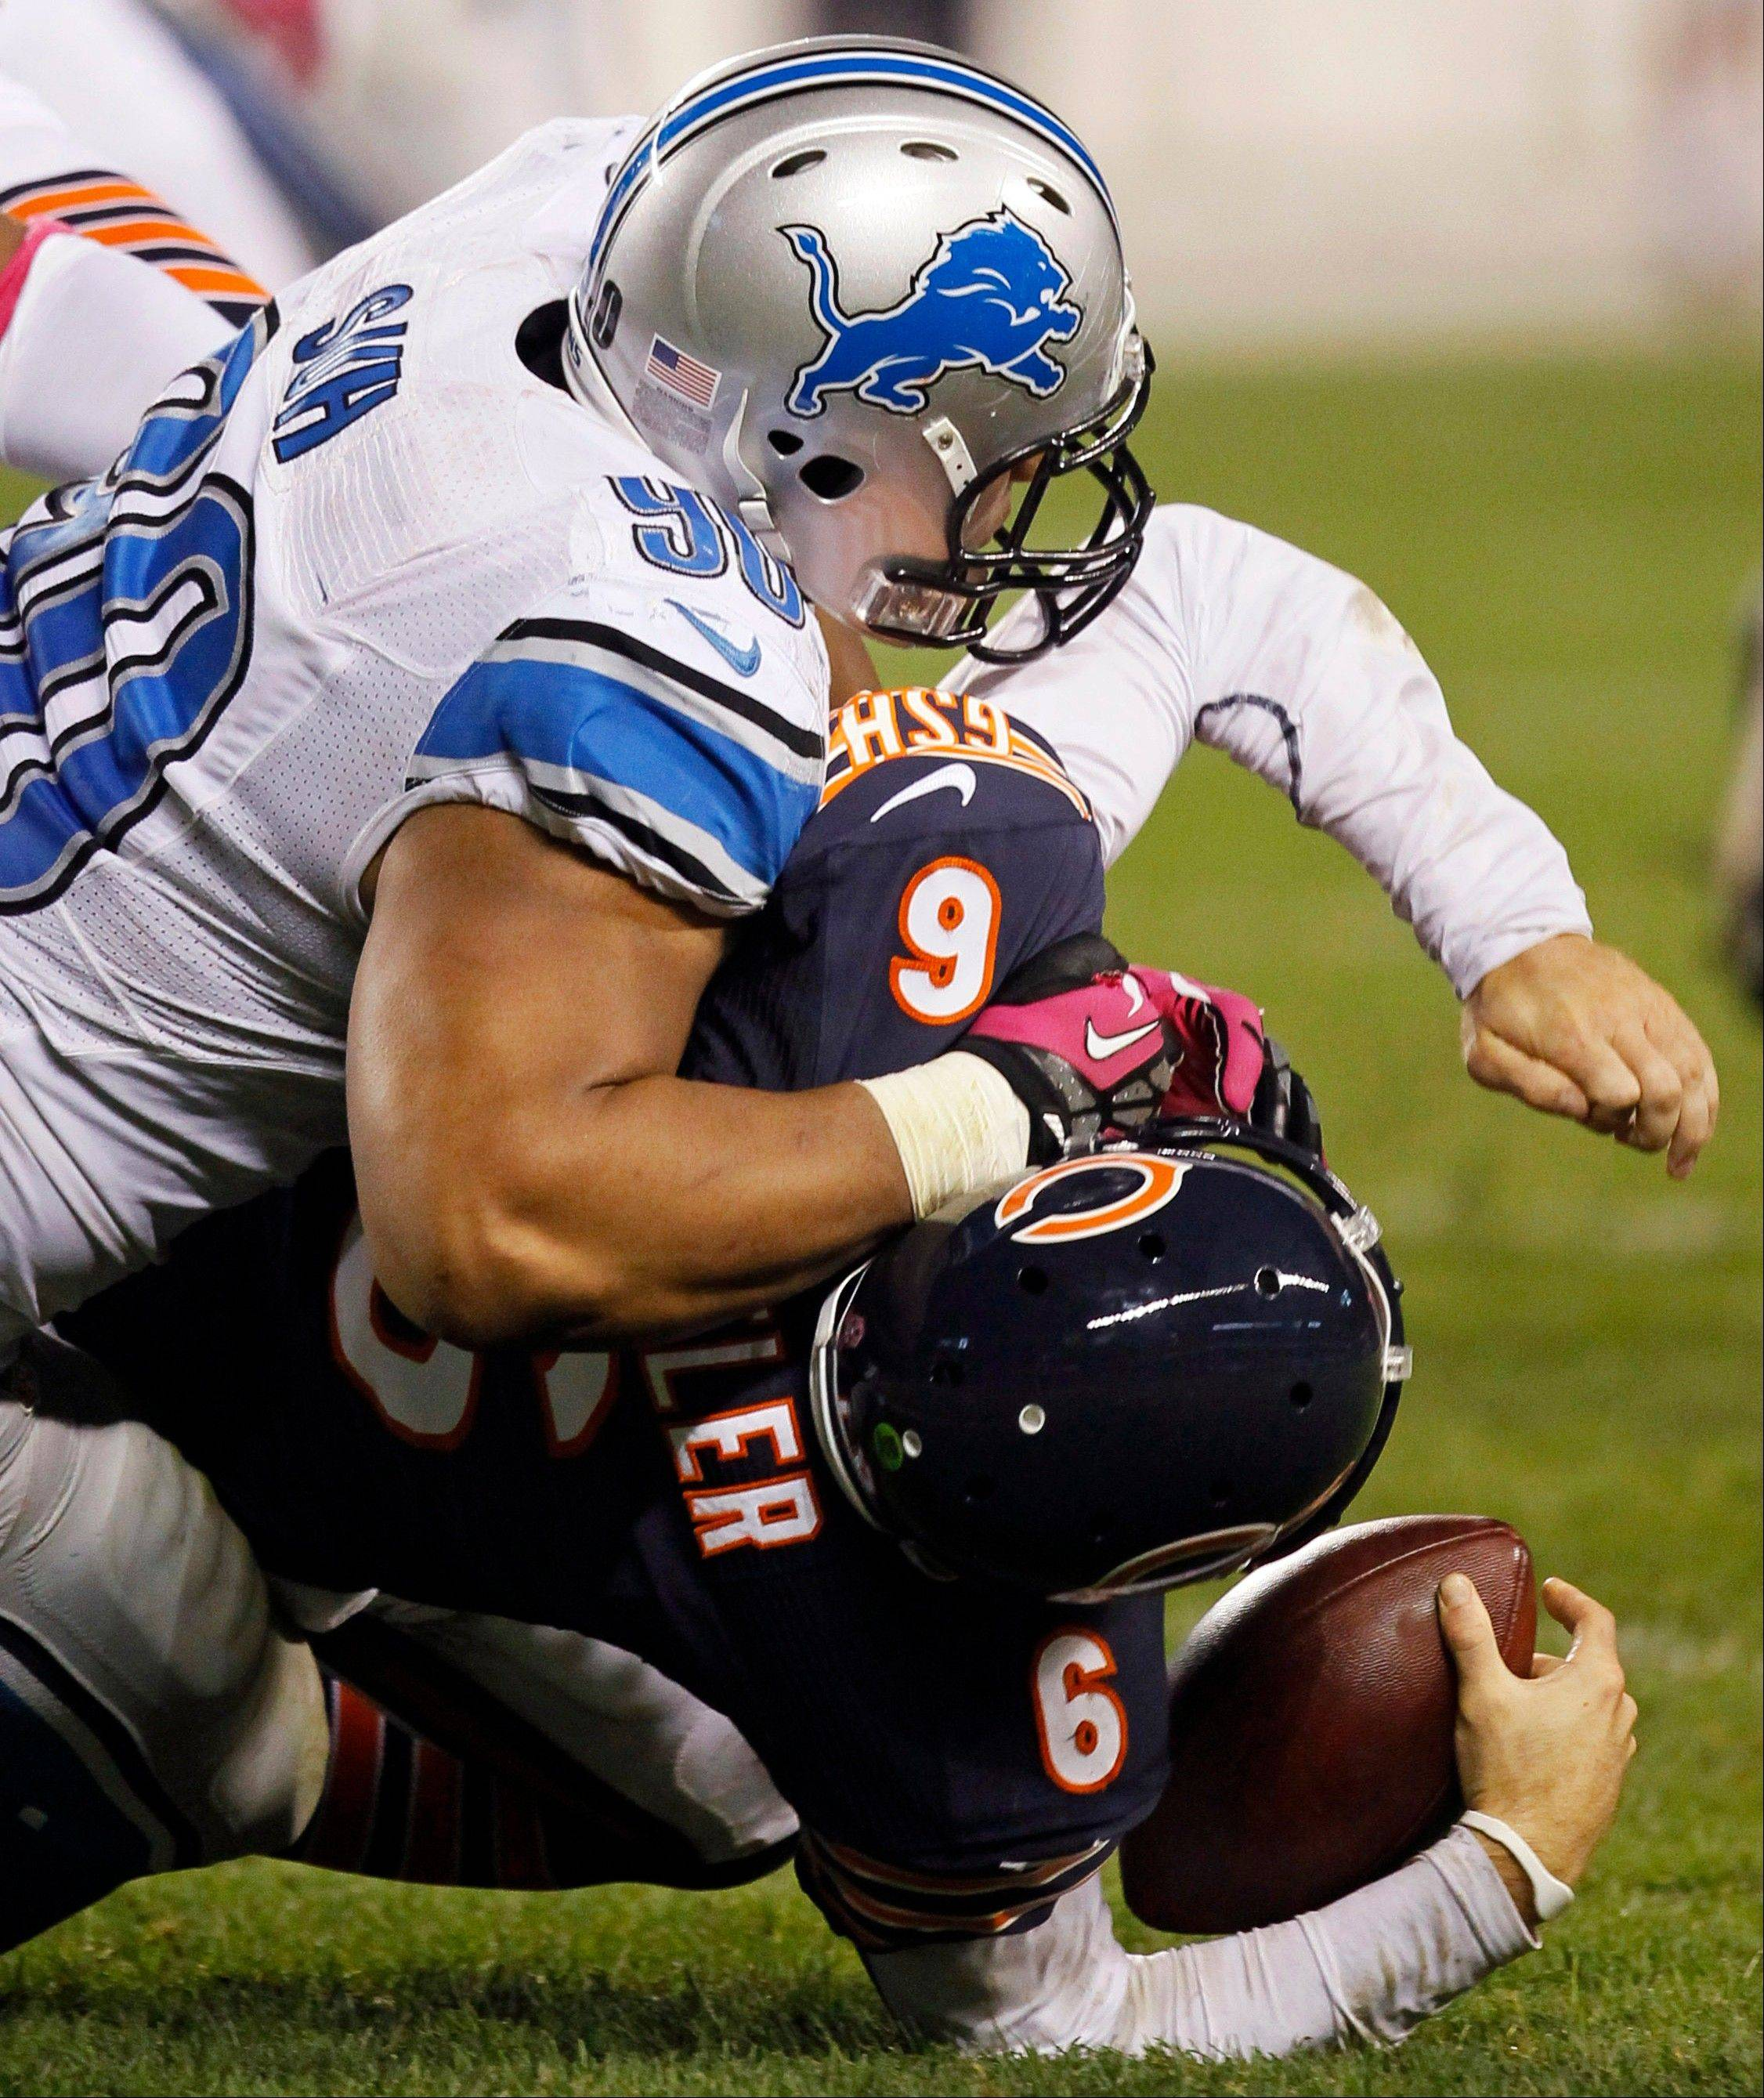 Chicago Bears quarterback Jay Cutler (6) is sacked by Detroit Lions defensive tackle Ndamukong Suh (90) in the first half of an NFL football game in Chicago, Monday, Oct. 22, 2012.